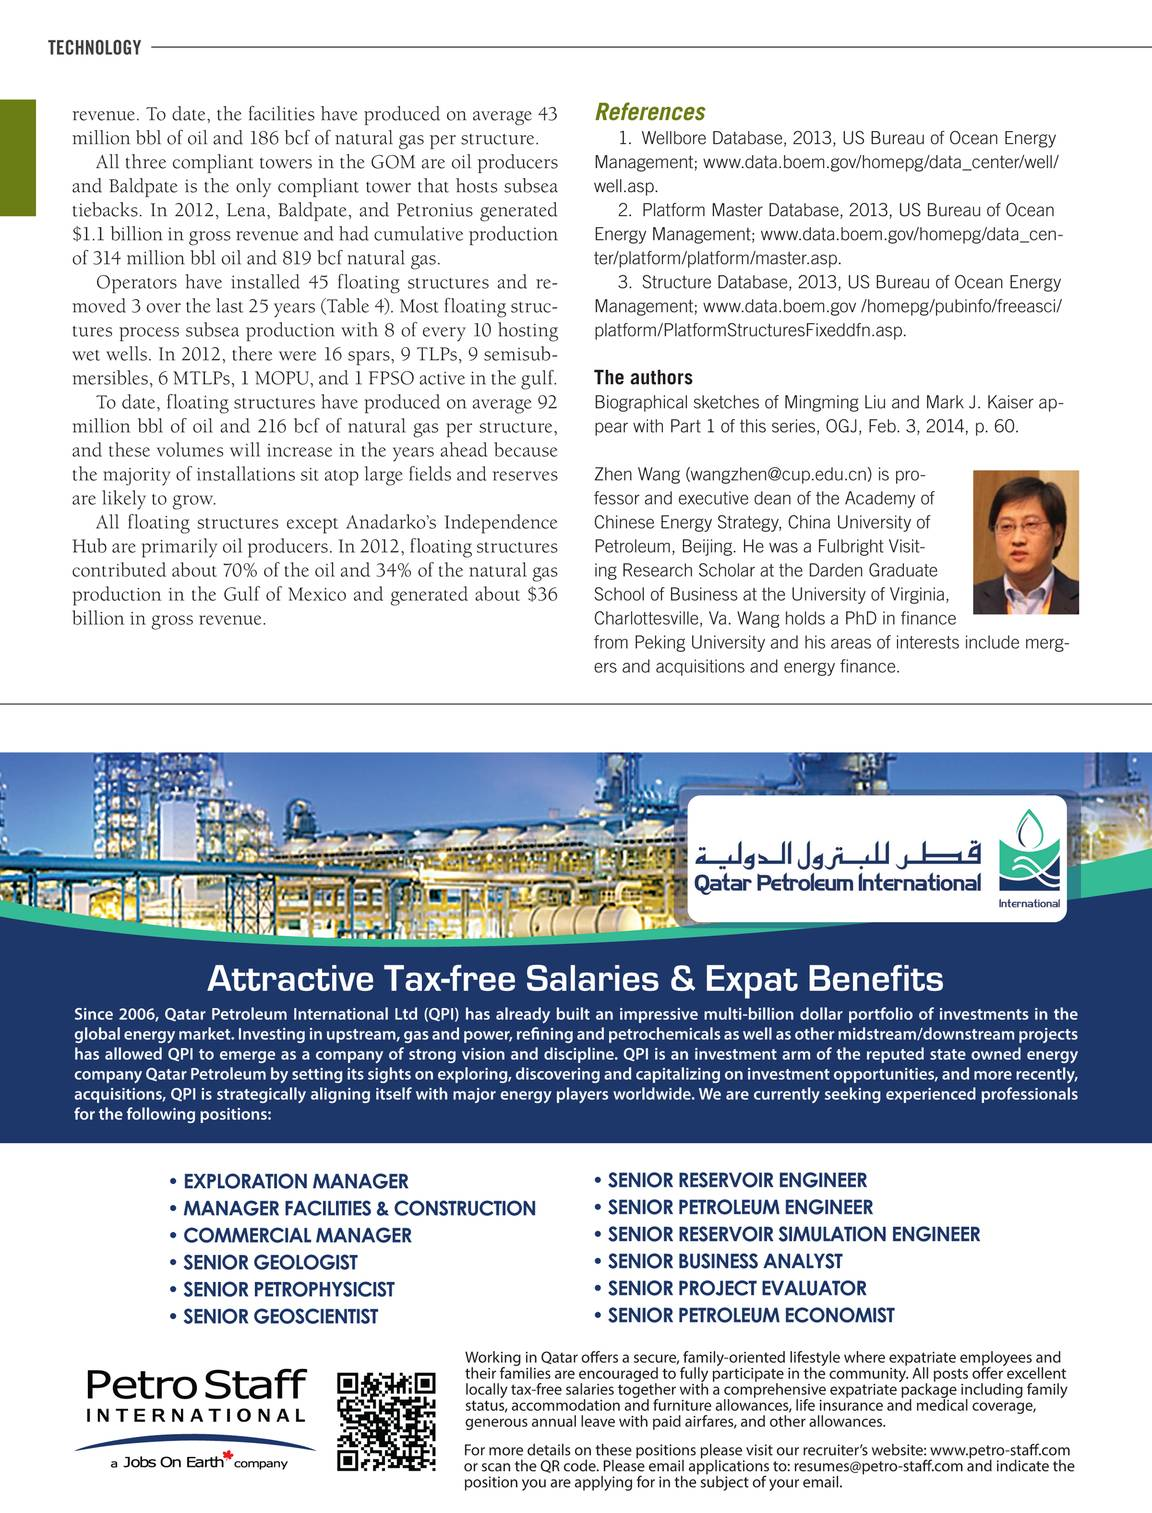 Oil & Gas Journal - March 03, 2014 - page 81